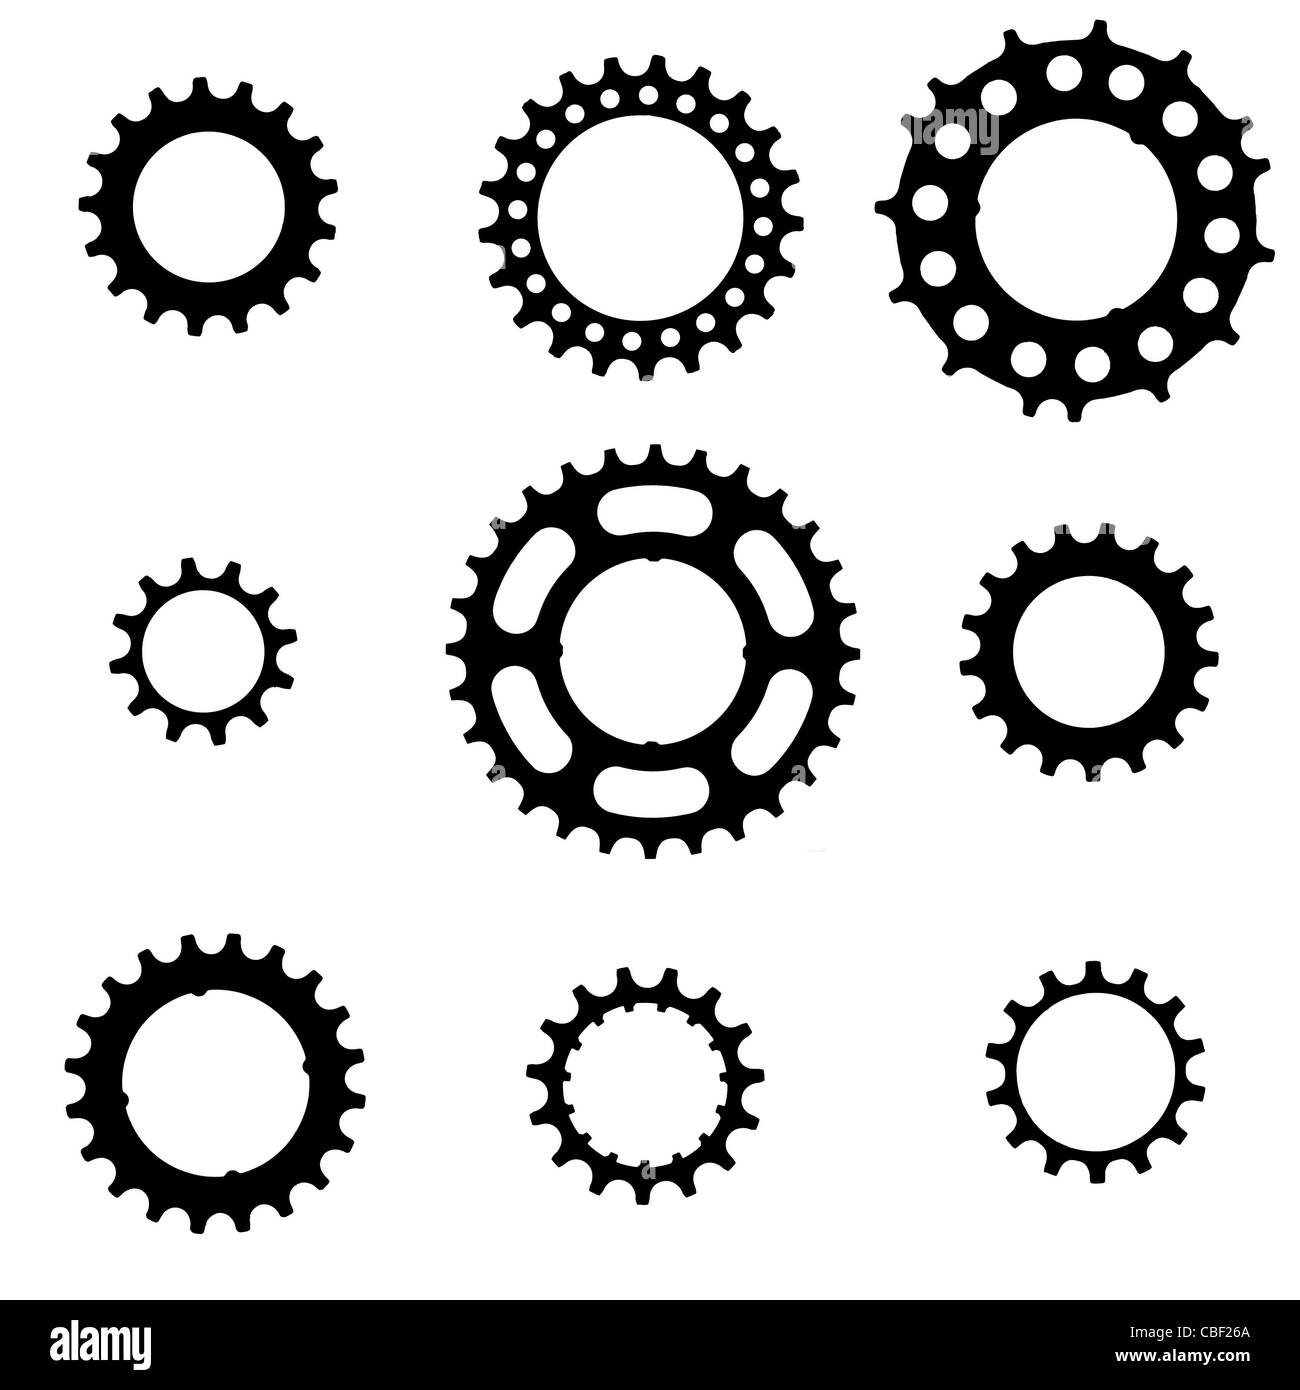 bicycle freewheel cogs (sprockets, gears) of various types ...